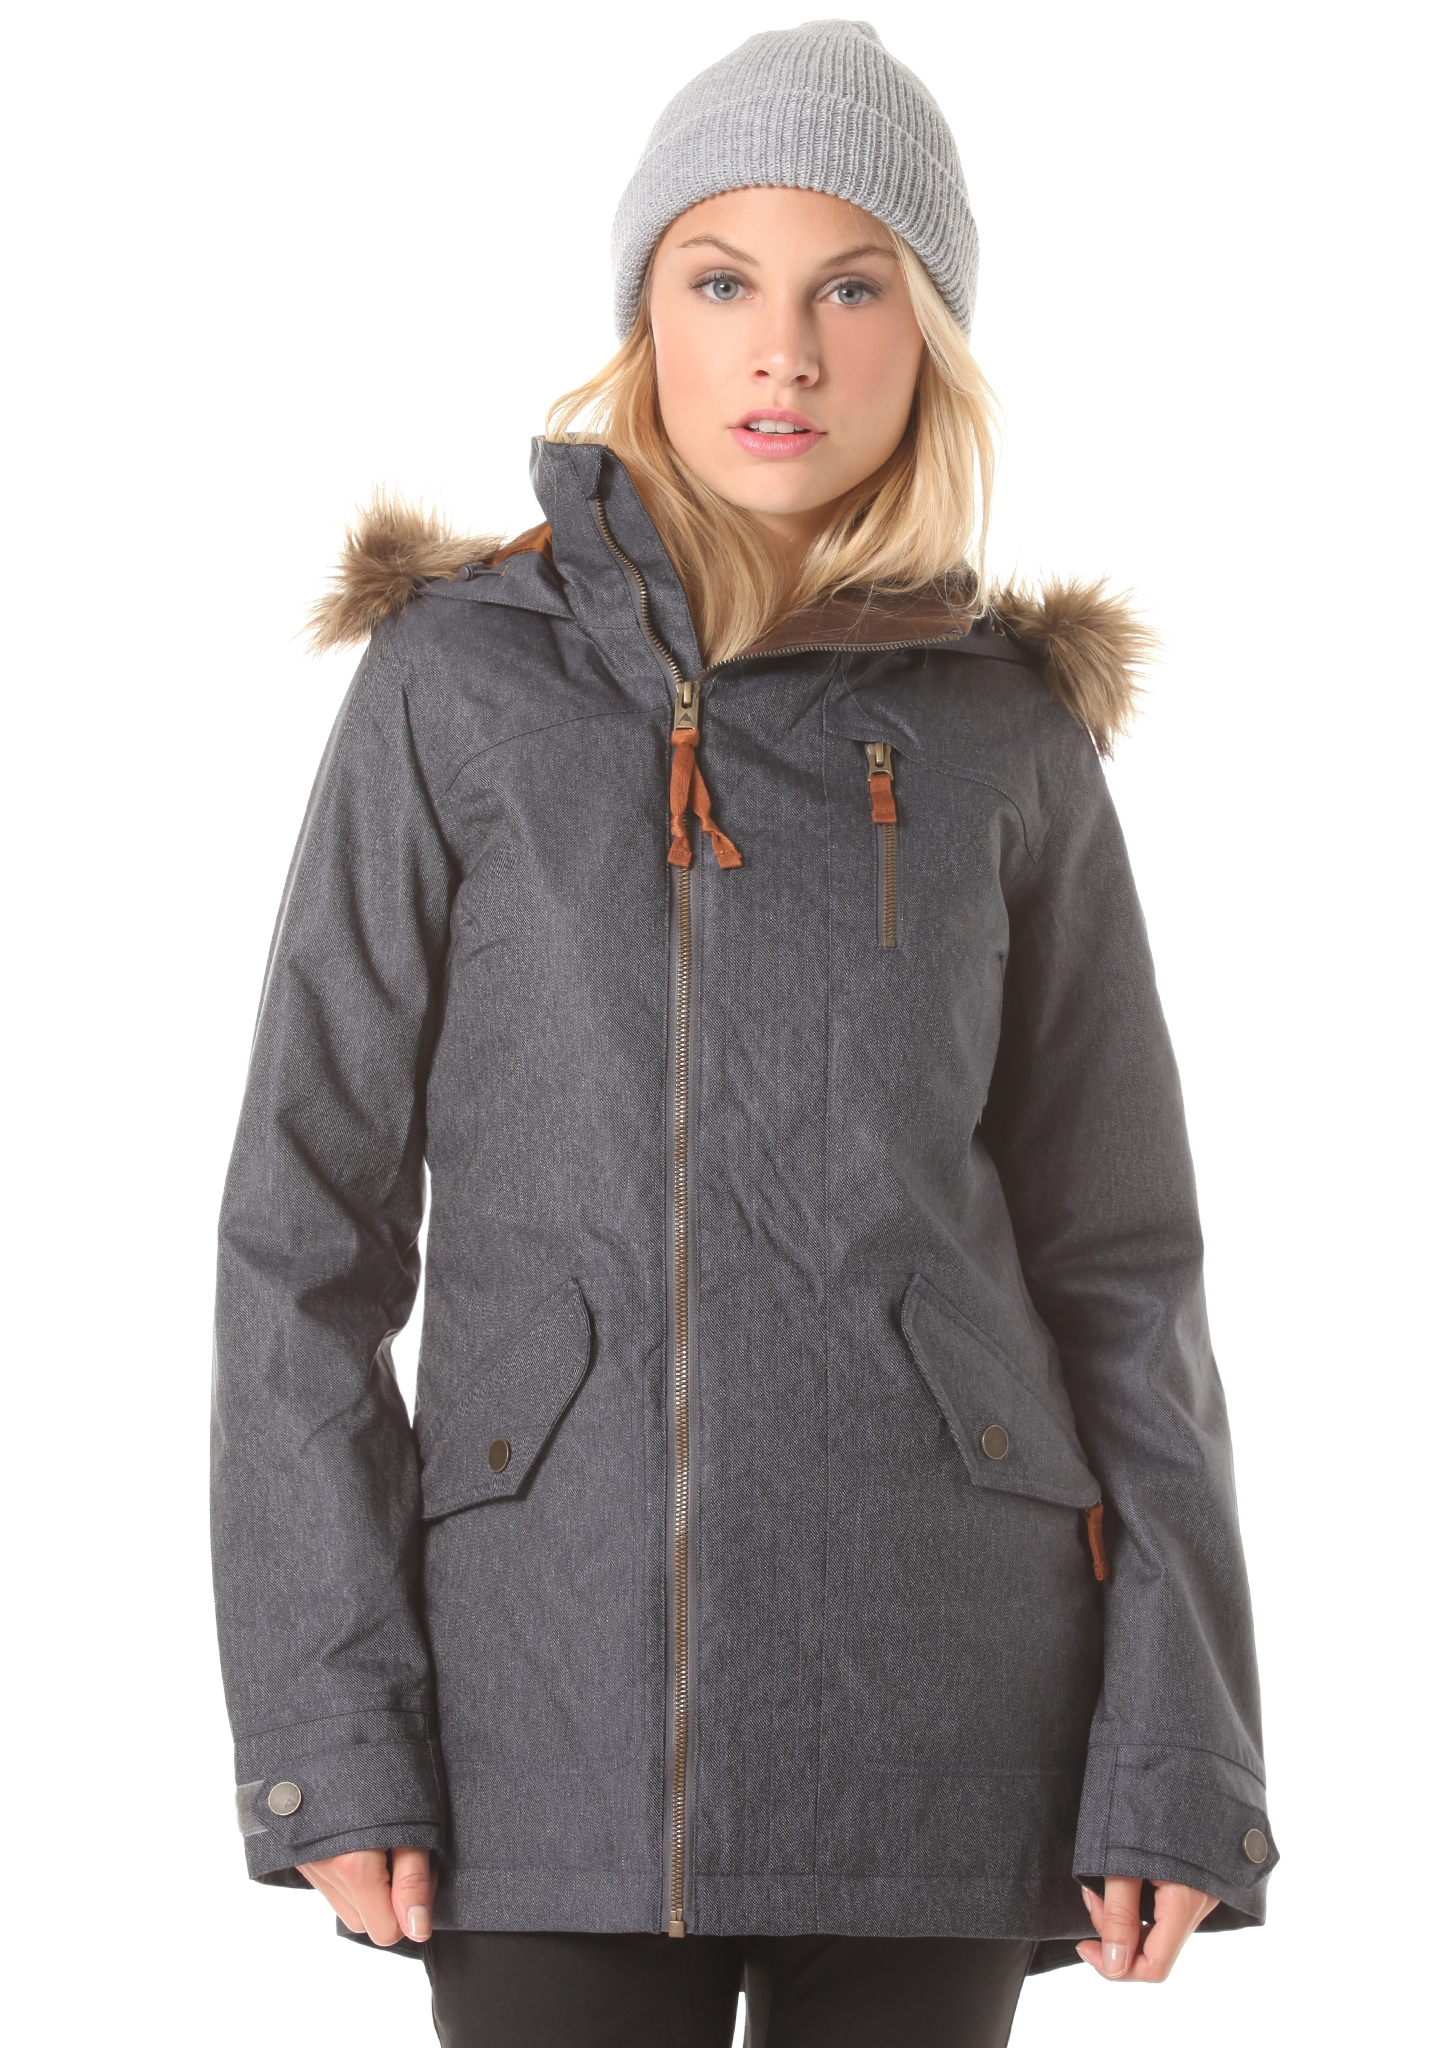 burton juliet damen snowboardjacke ebay. Black Bedroom Furniture Sets. Home Design Ideas